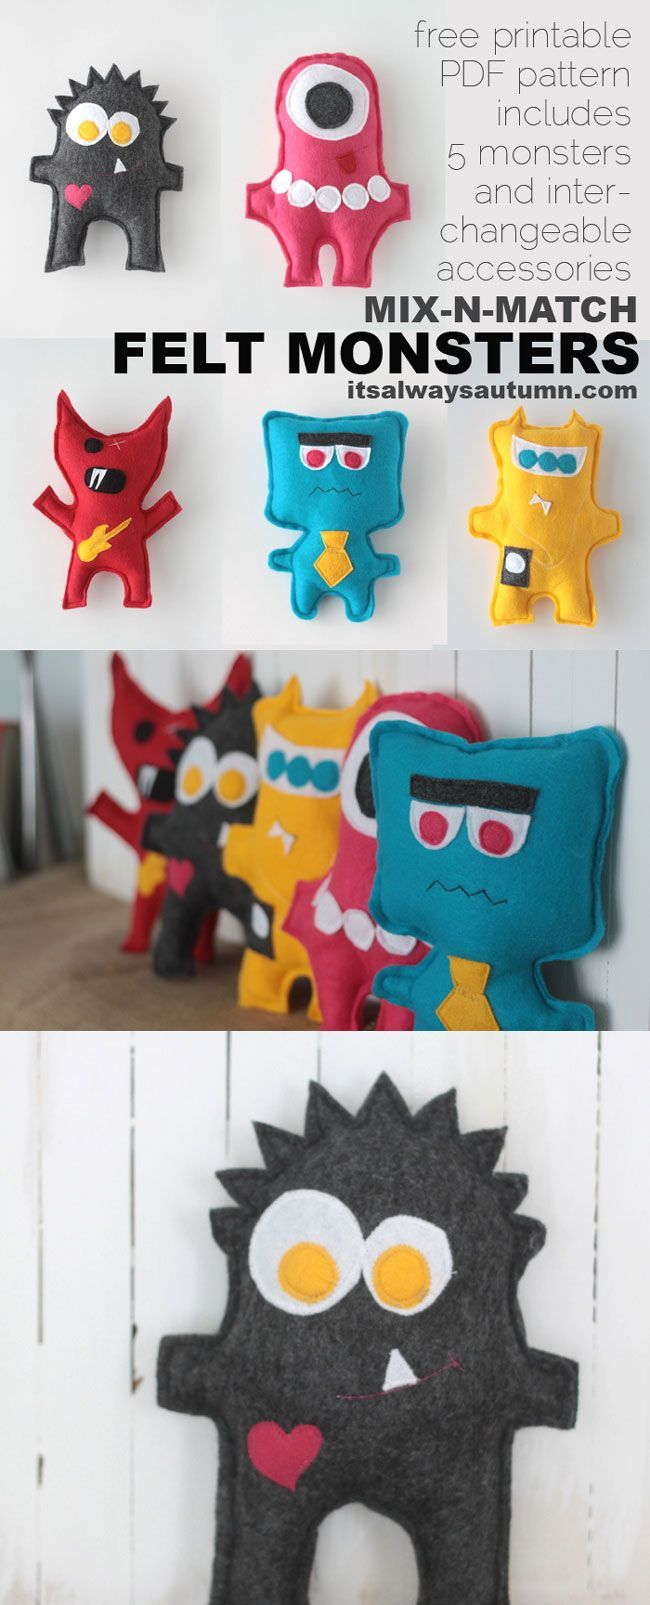 Felt monsters to make with your kids // Monstruos de fieltro para hacer con los niños #parenting #craftsforkids #manualidades #manualidadesniños #kidscrafts #IdeasQueInspiran #KBN #kidsactivities #kidsactivitiescrafts #actividadesniños #kidsplay #felt #fieltro #feltcrafts #manualdiadesfieltro #diy #monsters #diytoys #felttoys #monsterdolls #easysweing #sewing #sewingpattern #freepattern